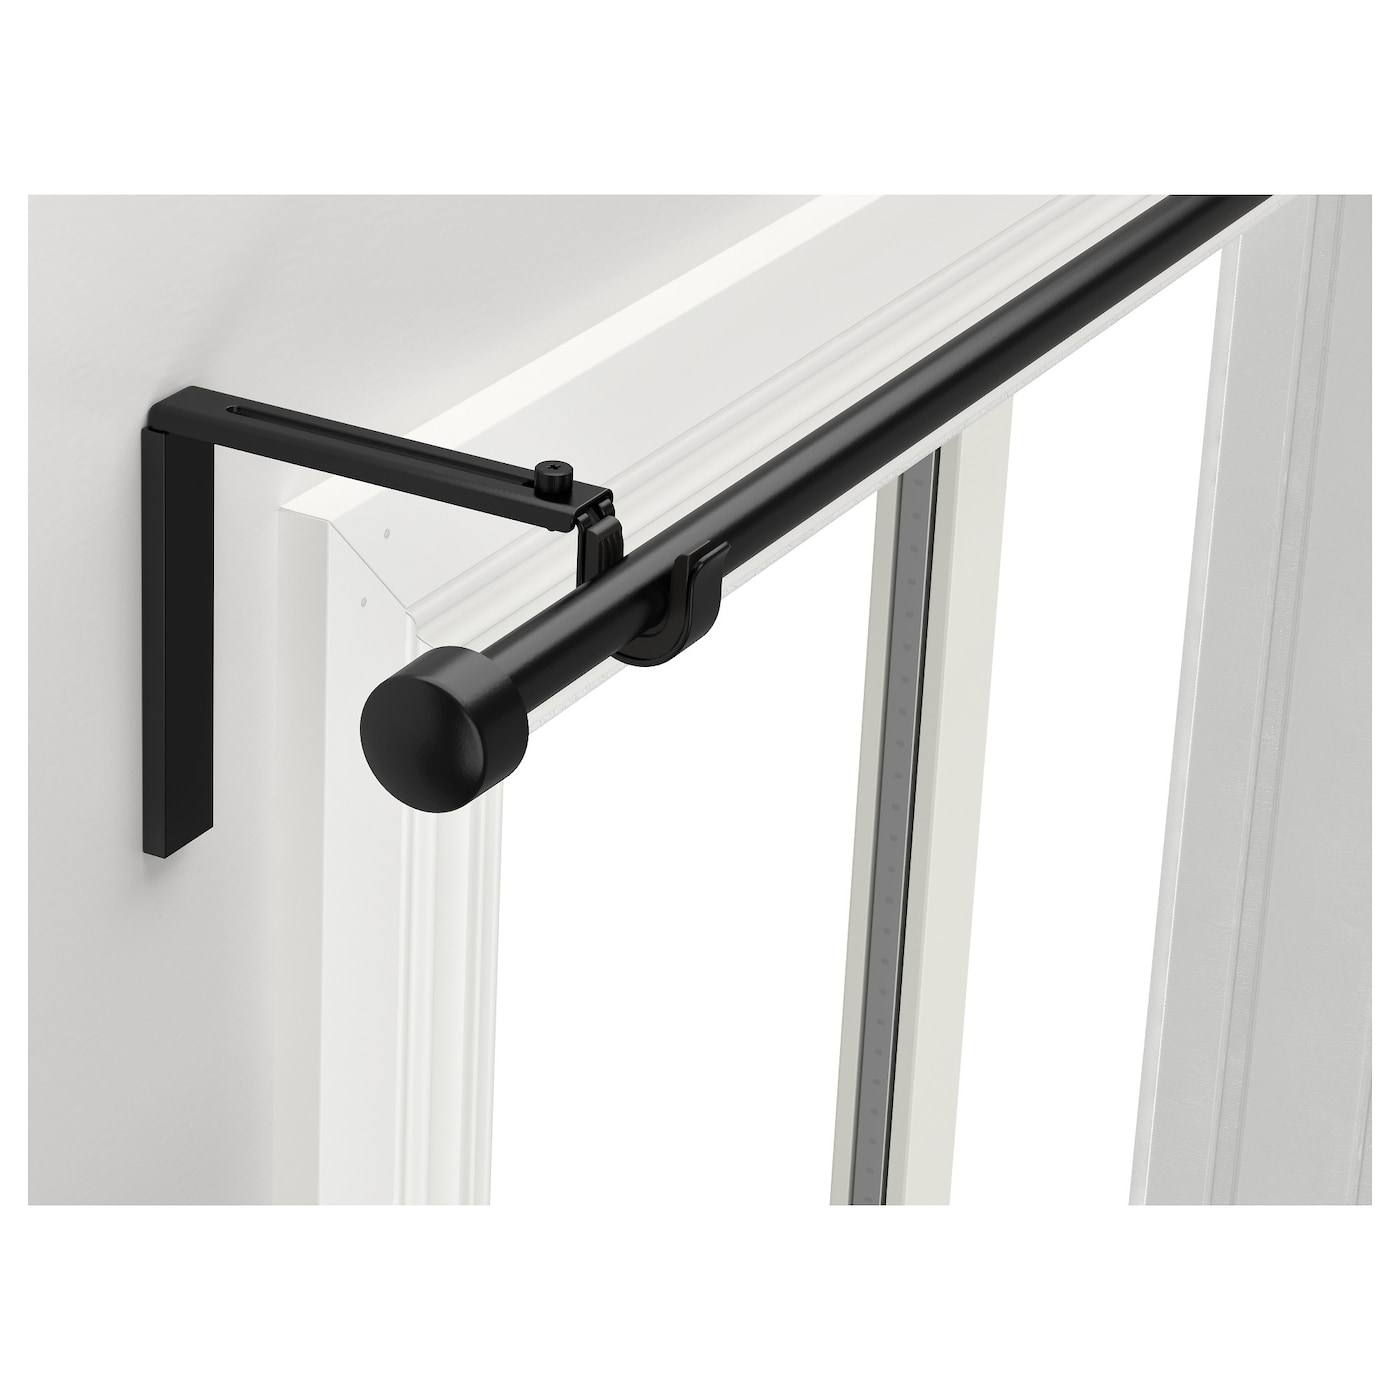 R cka curtain rod combination black 120 210 cm ikea for Soporte para cortinas